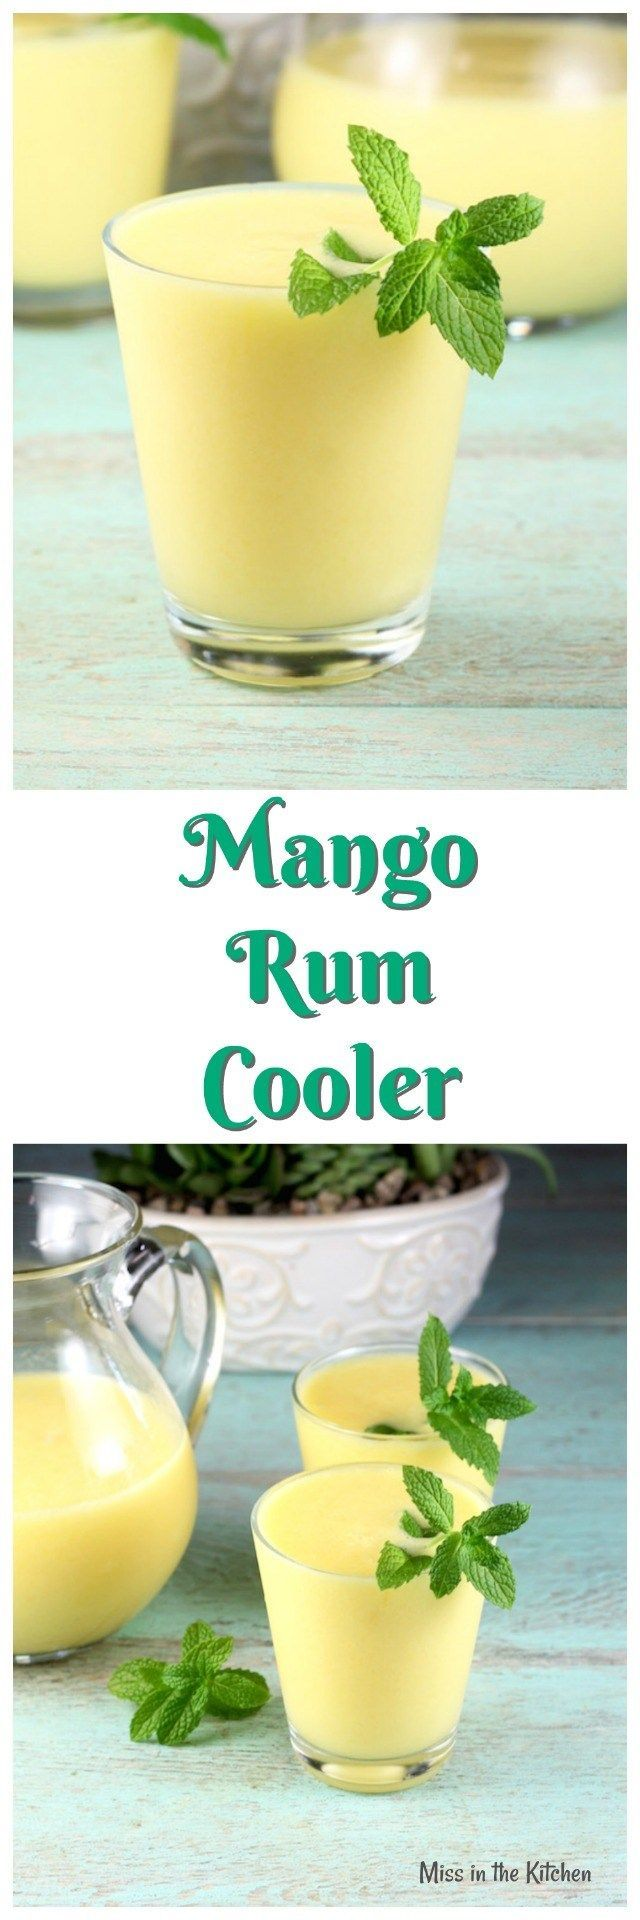 Summer Drinks  : Mango Rum Cooler Cocktail Recipe from MissintheKitchen.com Perfect summer party drink! #rumdrinks